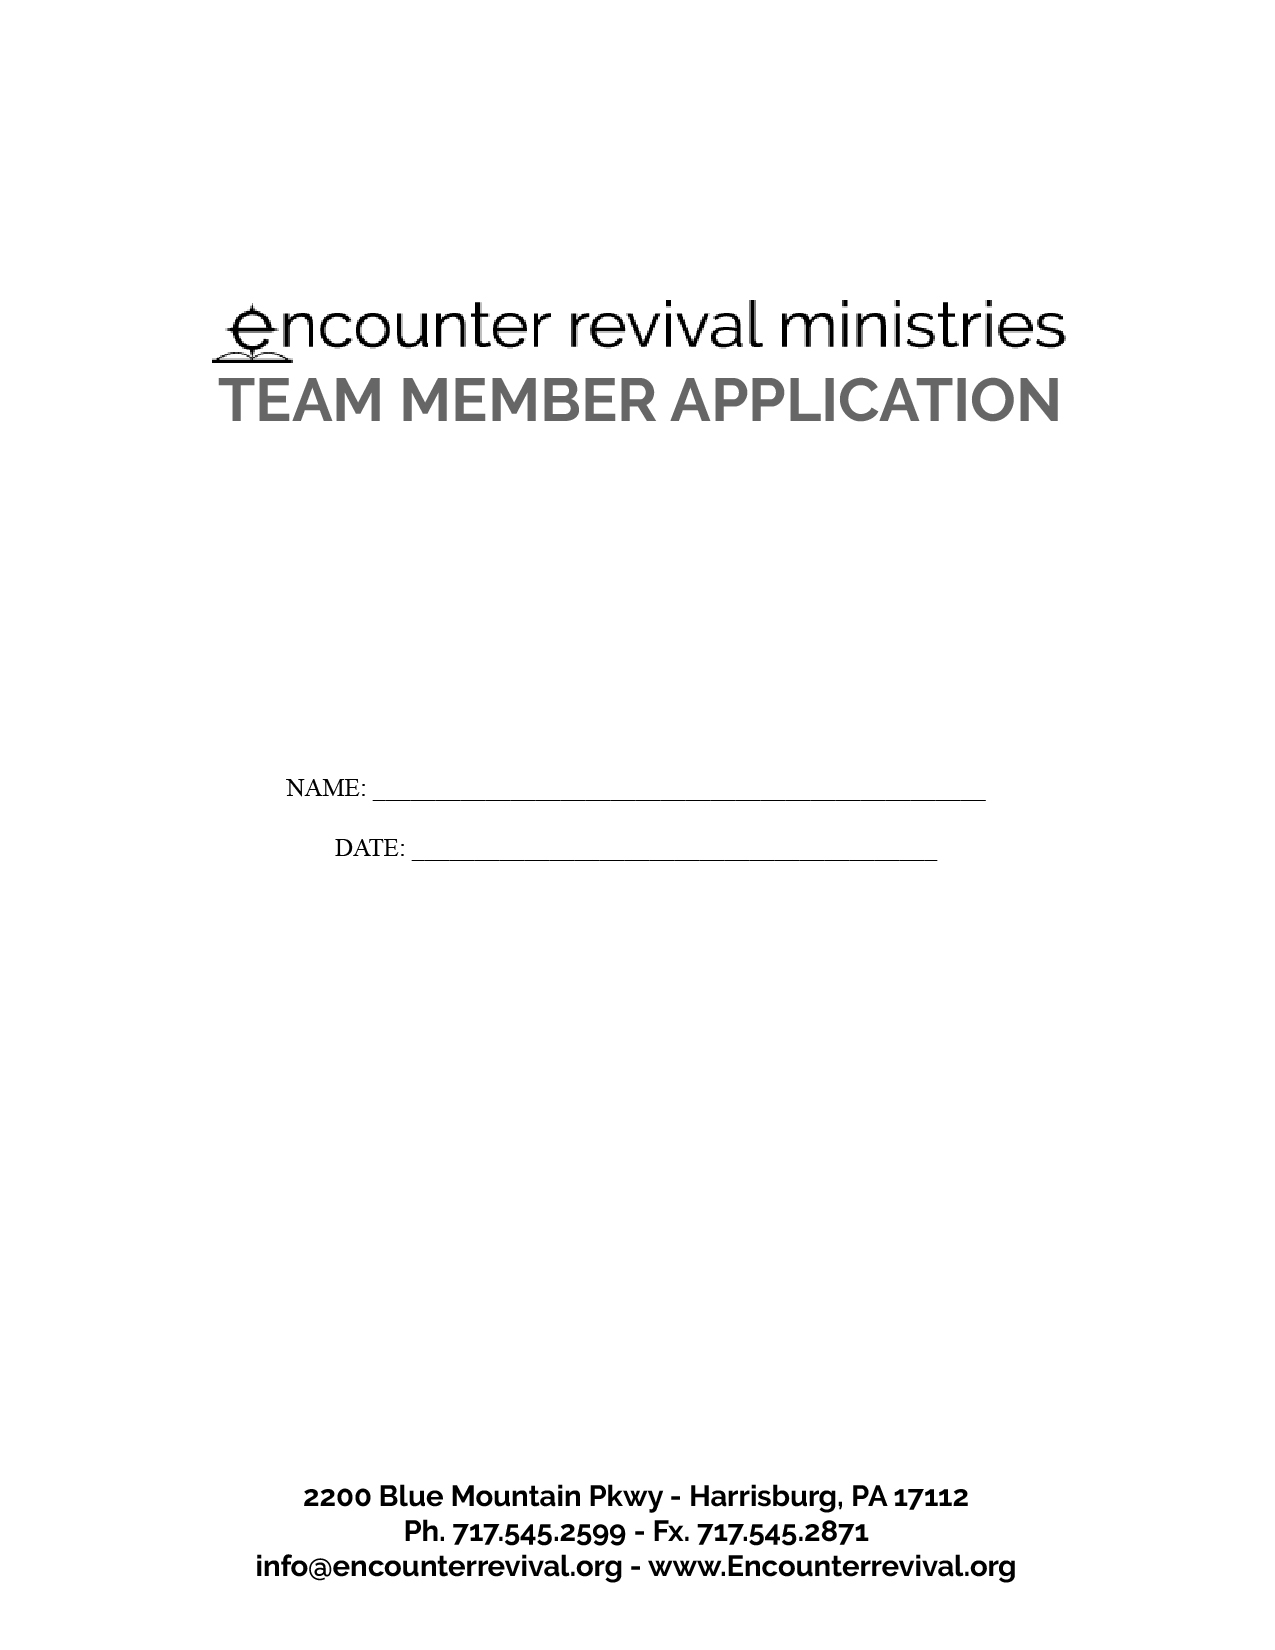 ERM Team Member Application  [PDF]